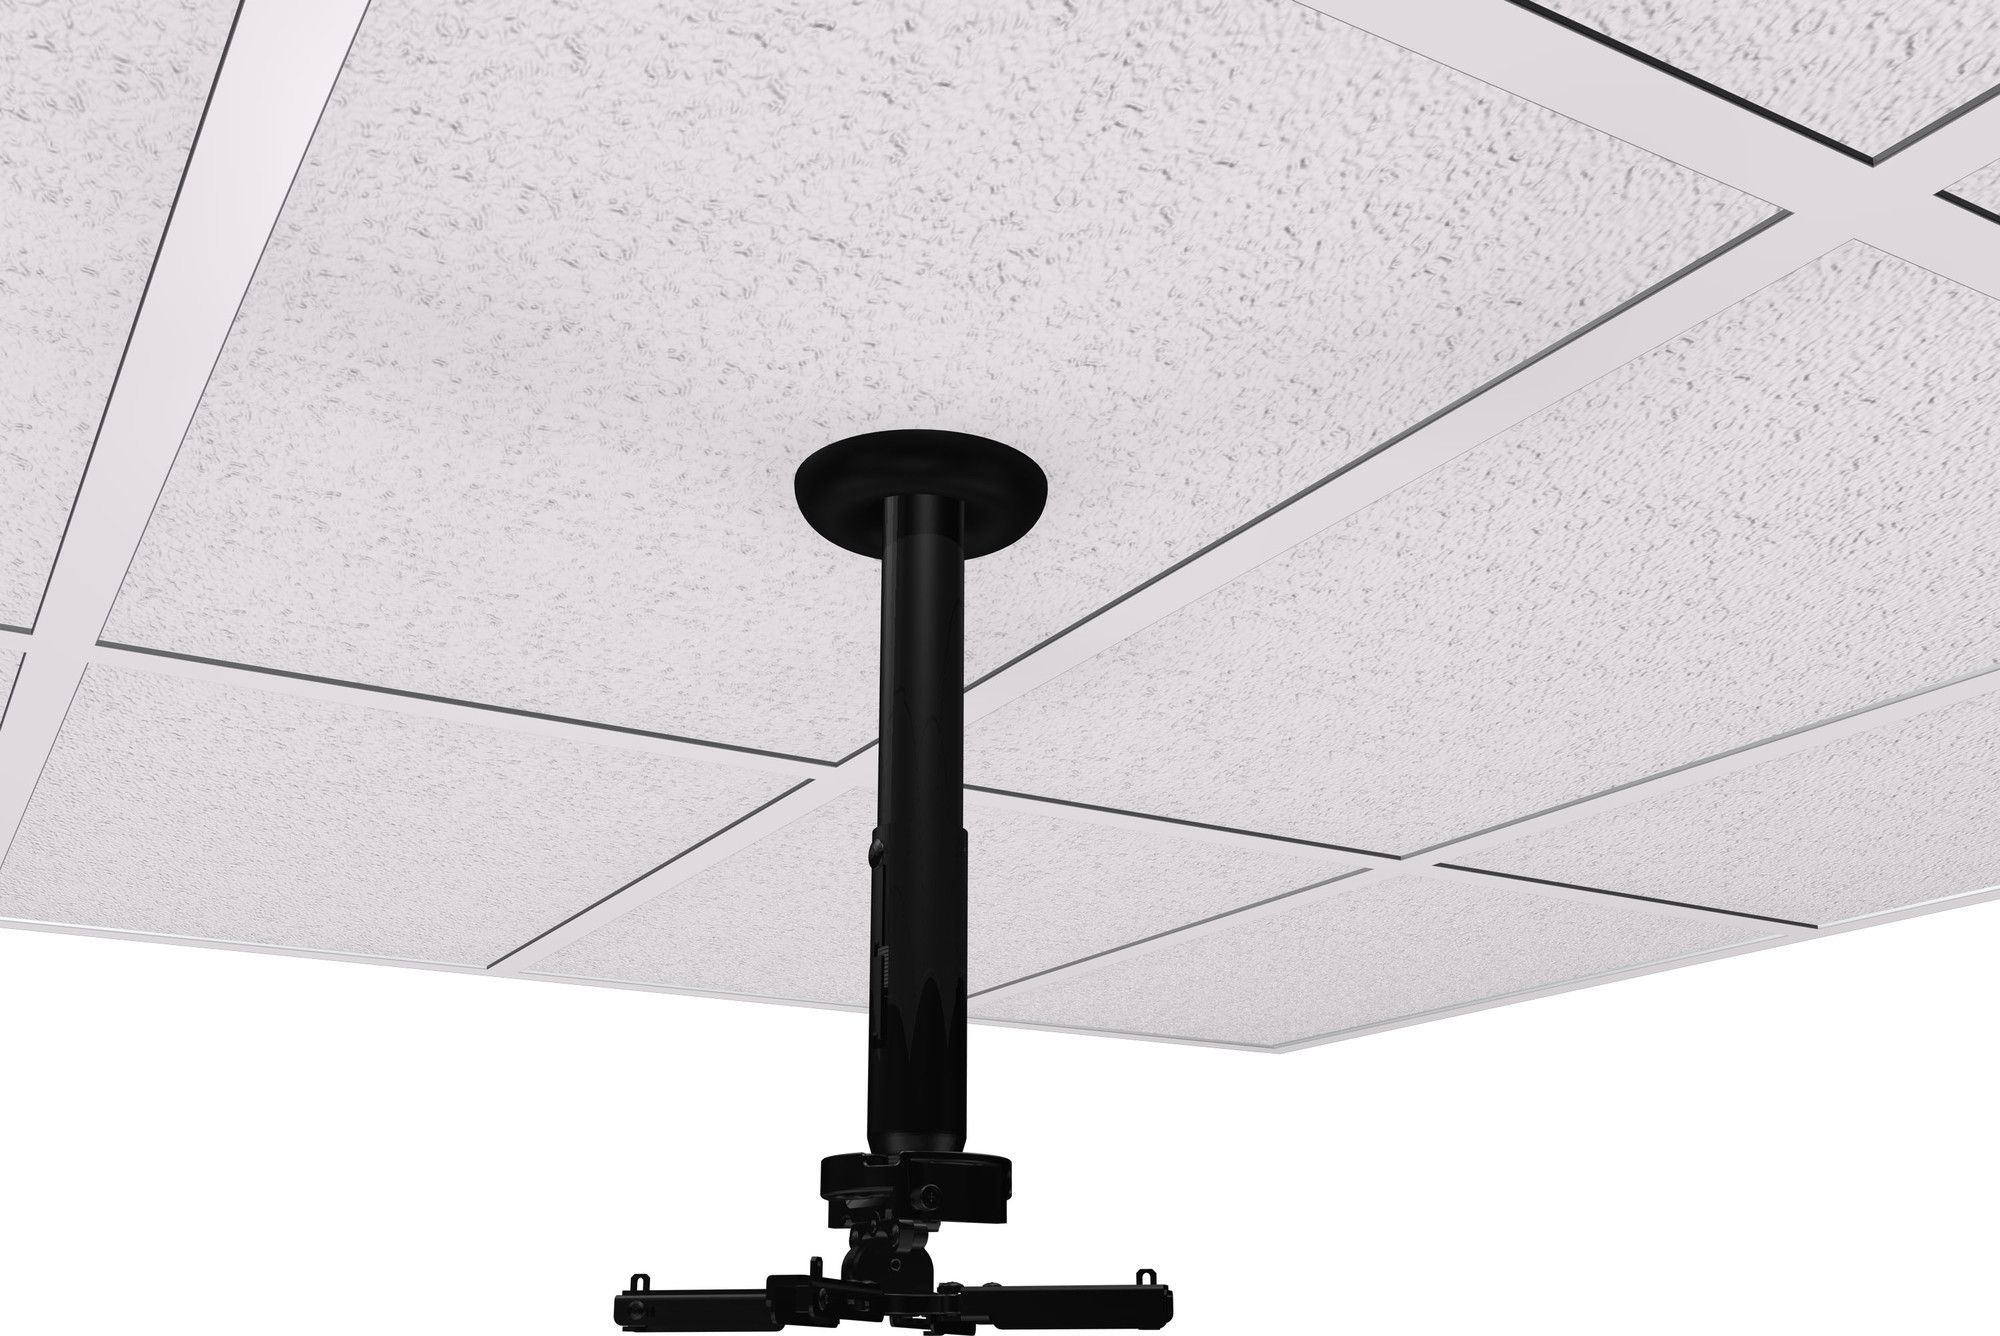 Universal Suspended Ceiling Mount Projector Kit Projector Ceiling Projector Projector Mount Ceiling